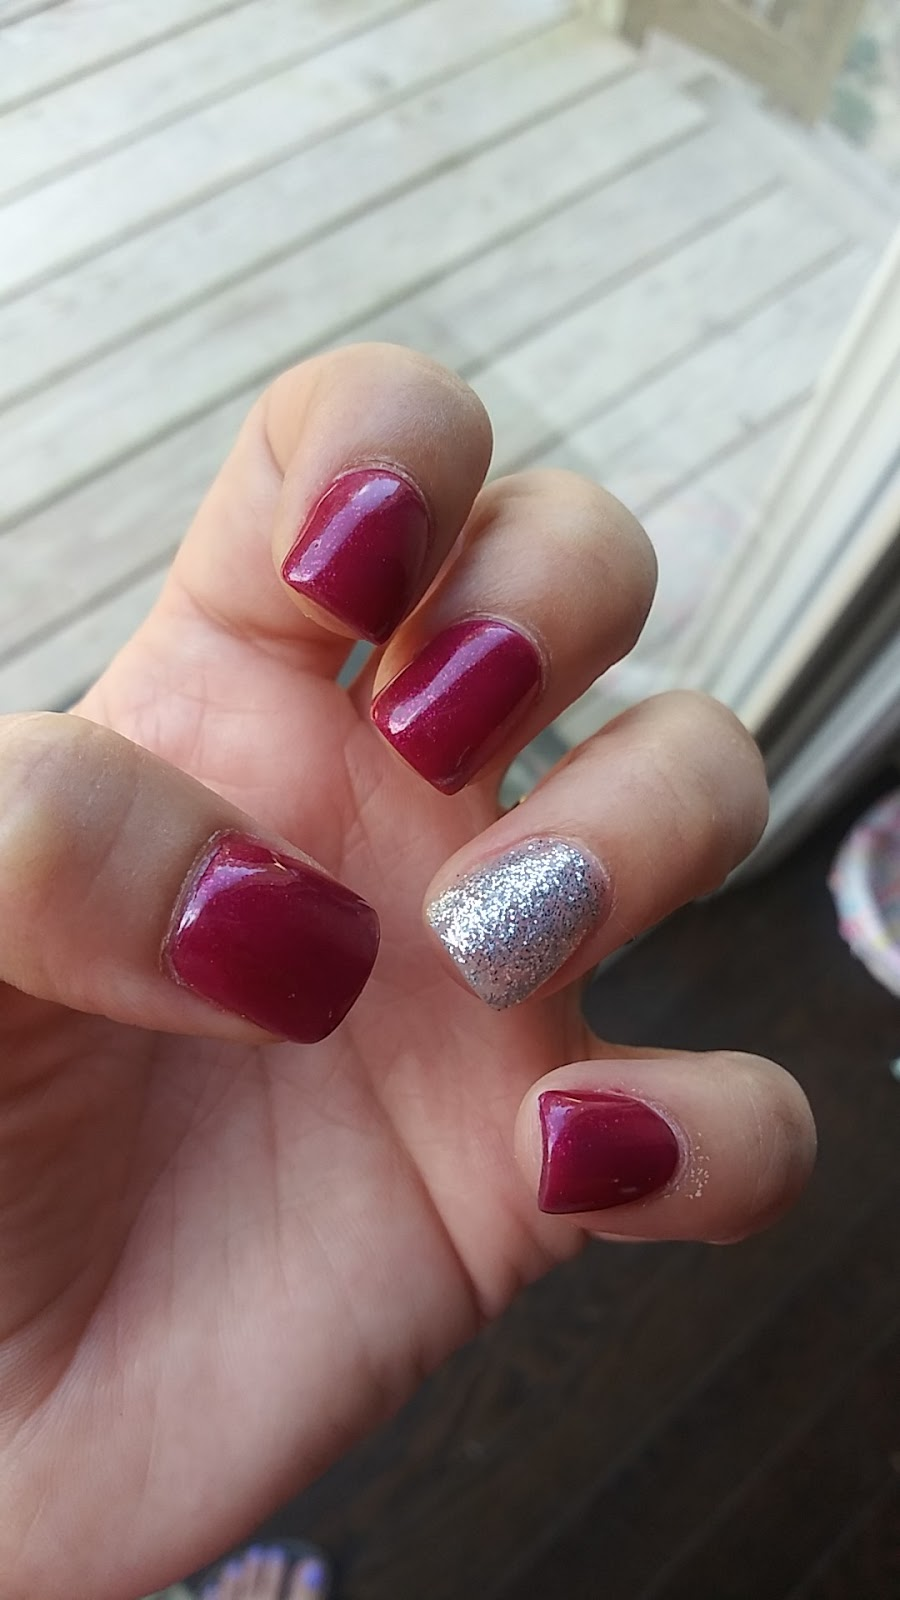 Knightdale Day Spa Nails - spa  | Photo 1 of 7 | Address: 4001 Widewaters Parkway # D, Knightdale, NC 27545, USA | Phone: (919) 261-9851